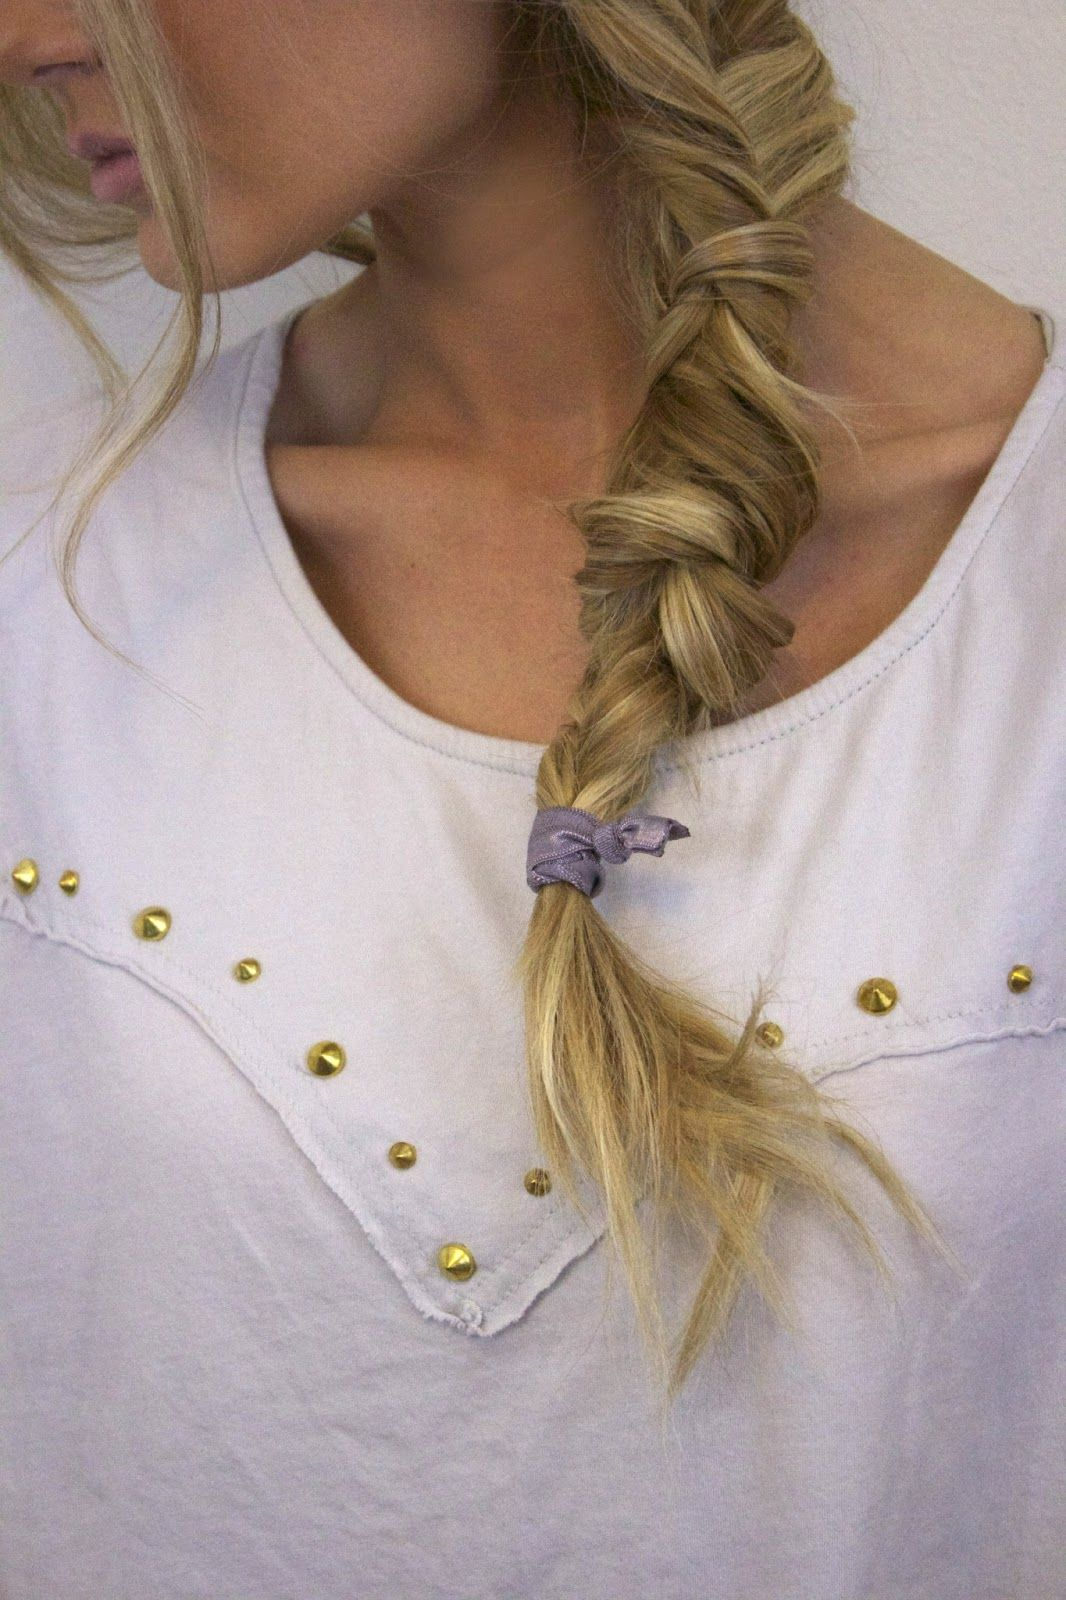 Twisted braid  Style  Pinterest  Twisted braid Hair style and Makeup